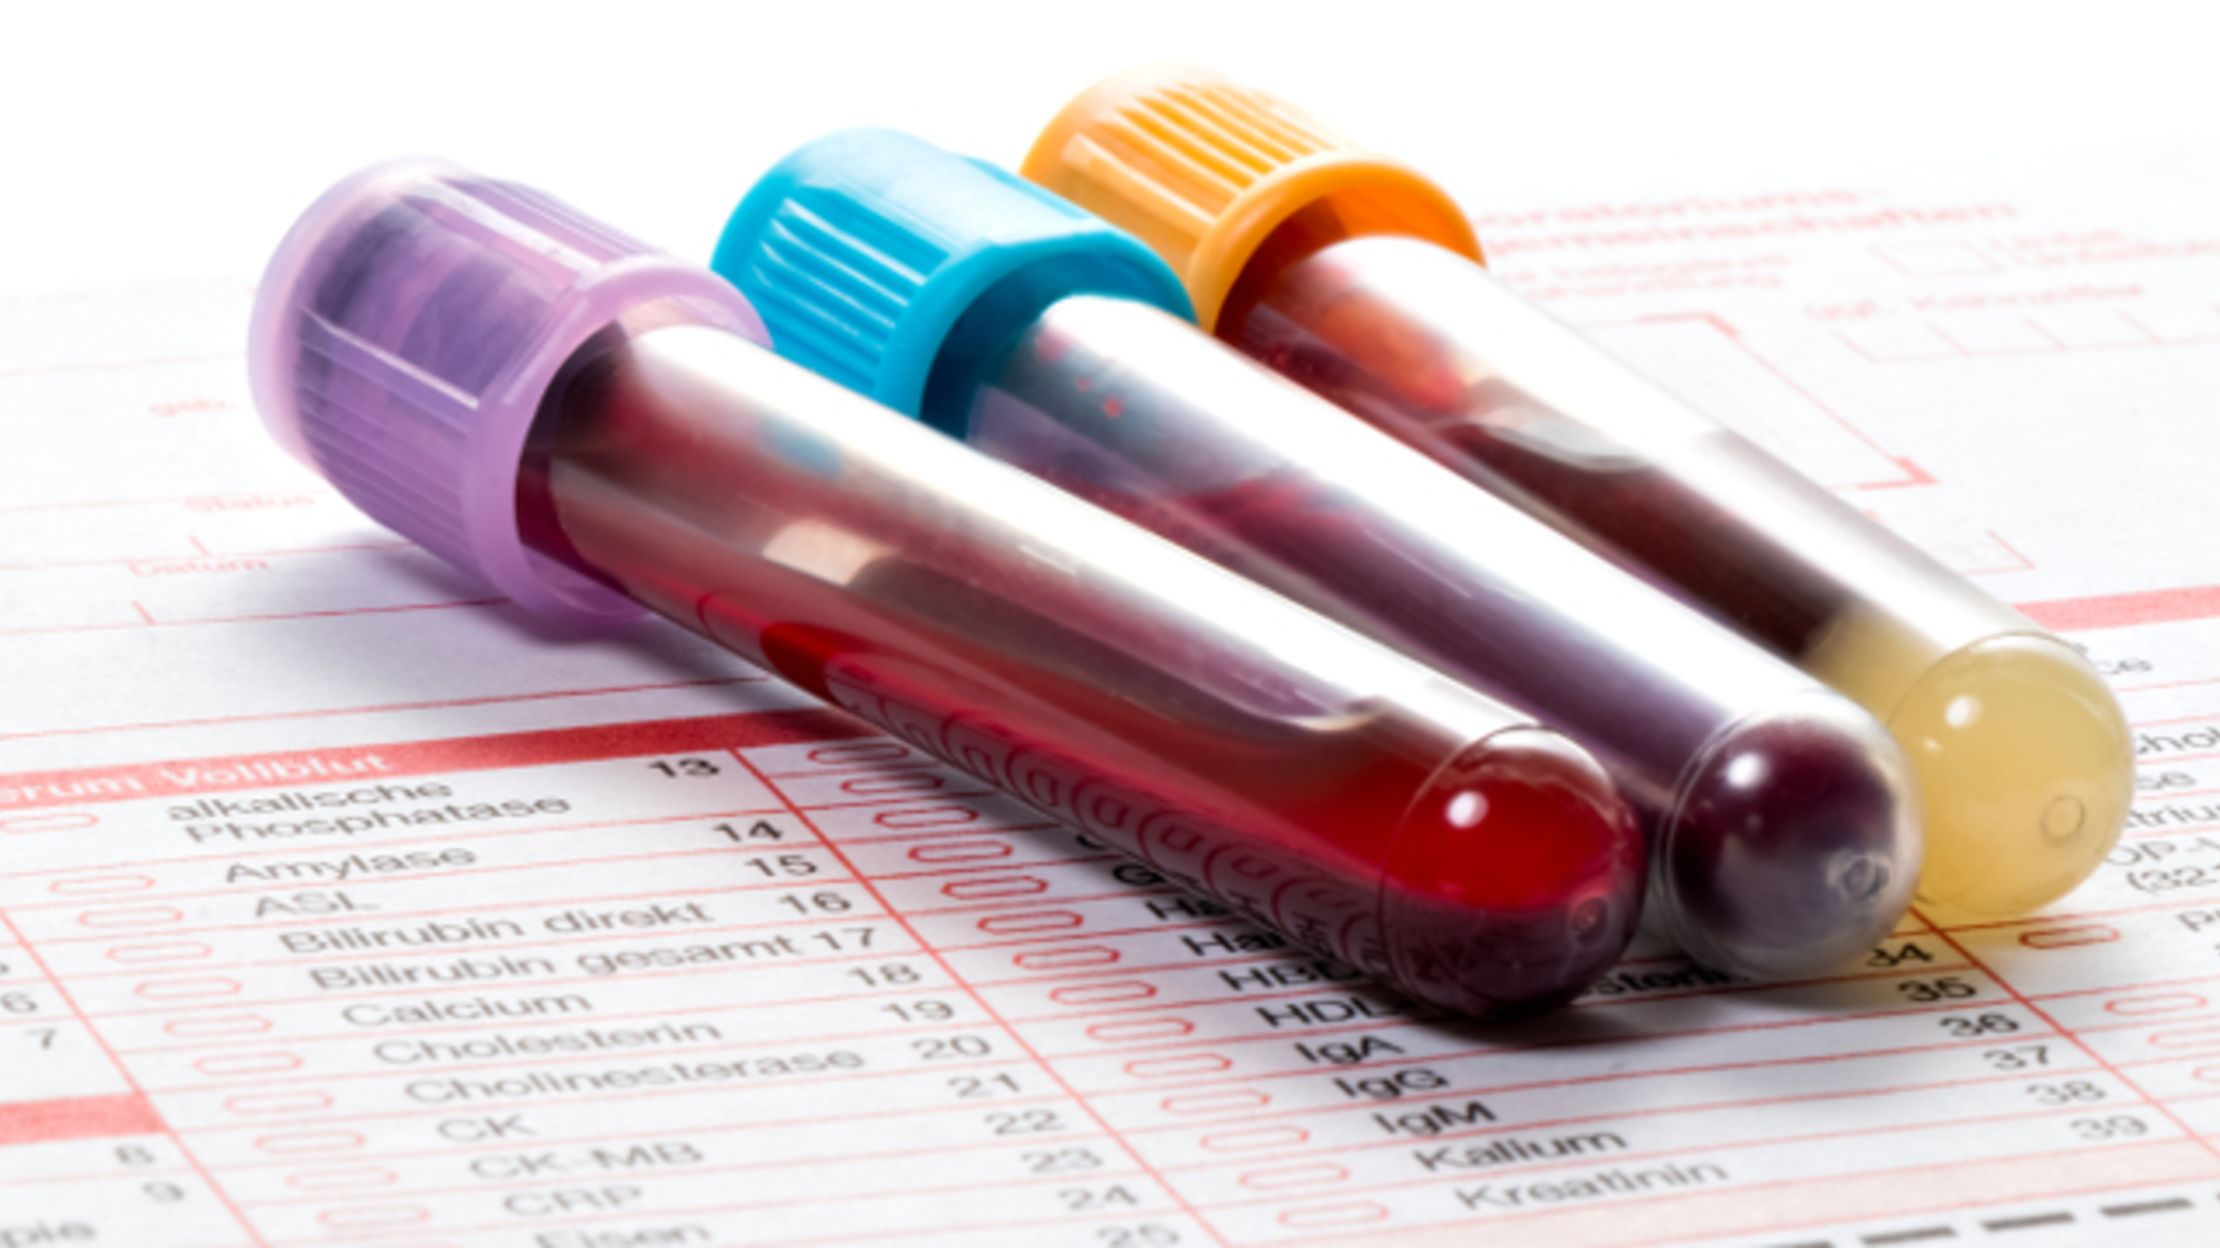 7 Sanguine Facts About Human Blood | Mental Floss